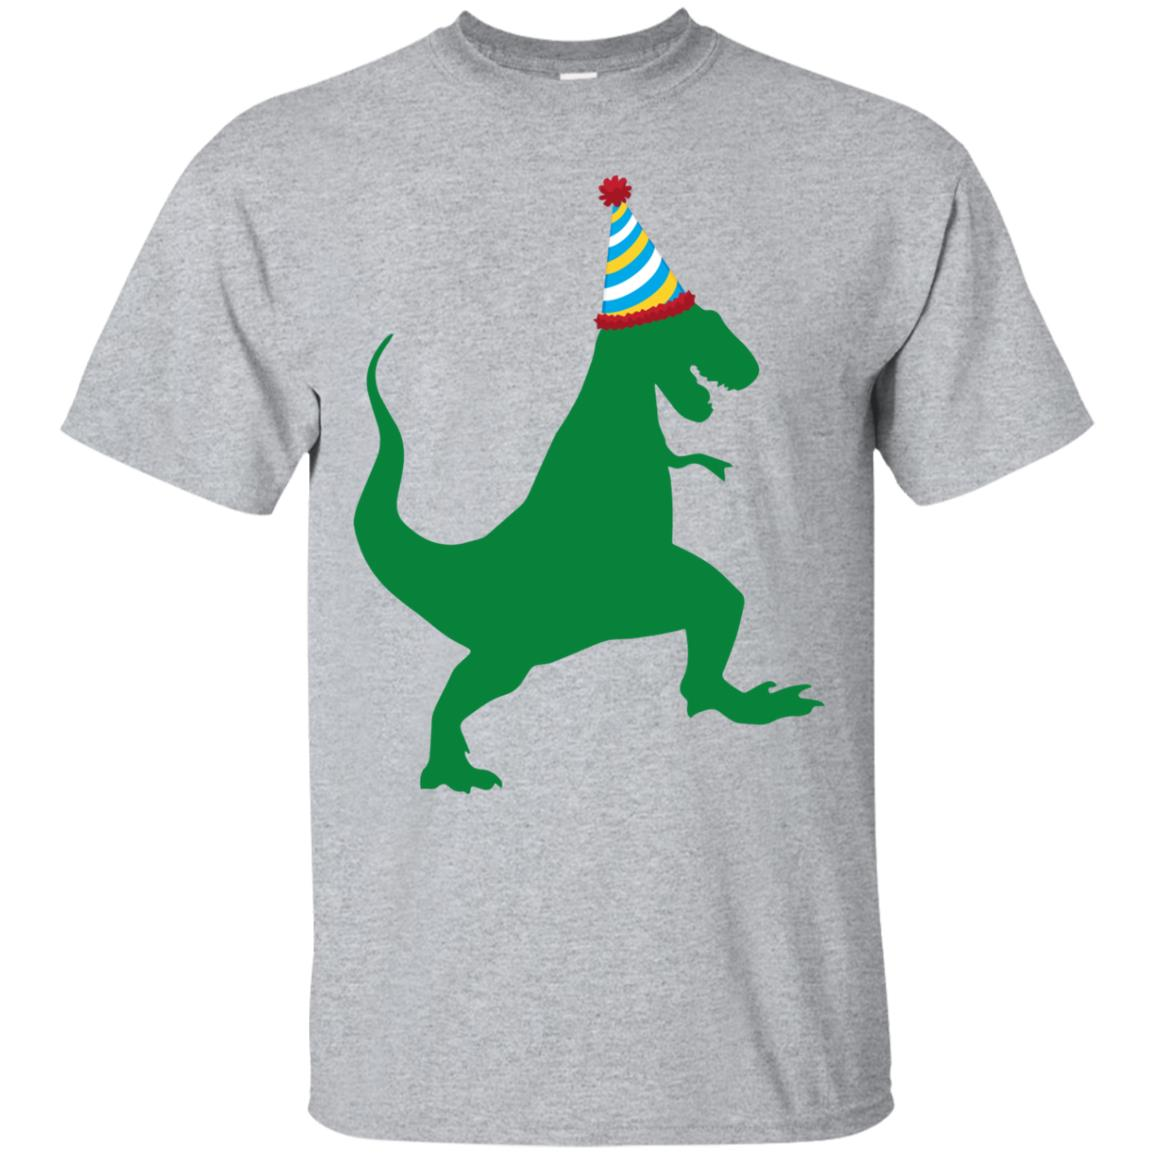 Mommysaurus Shirt, Dinosaur Mom Shirt 99promocode